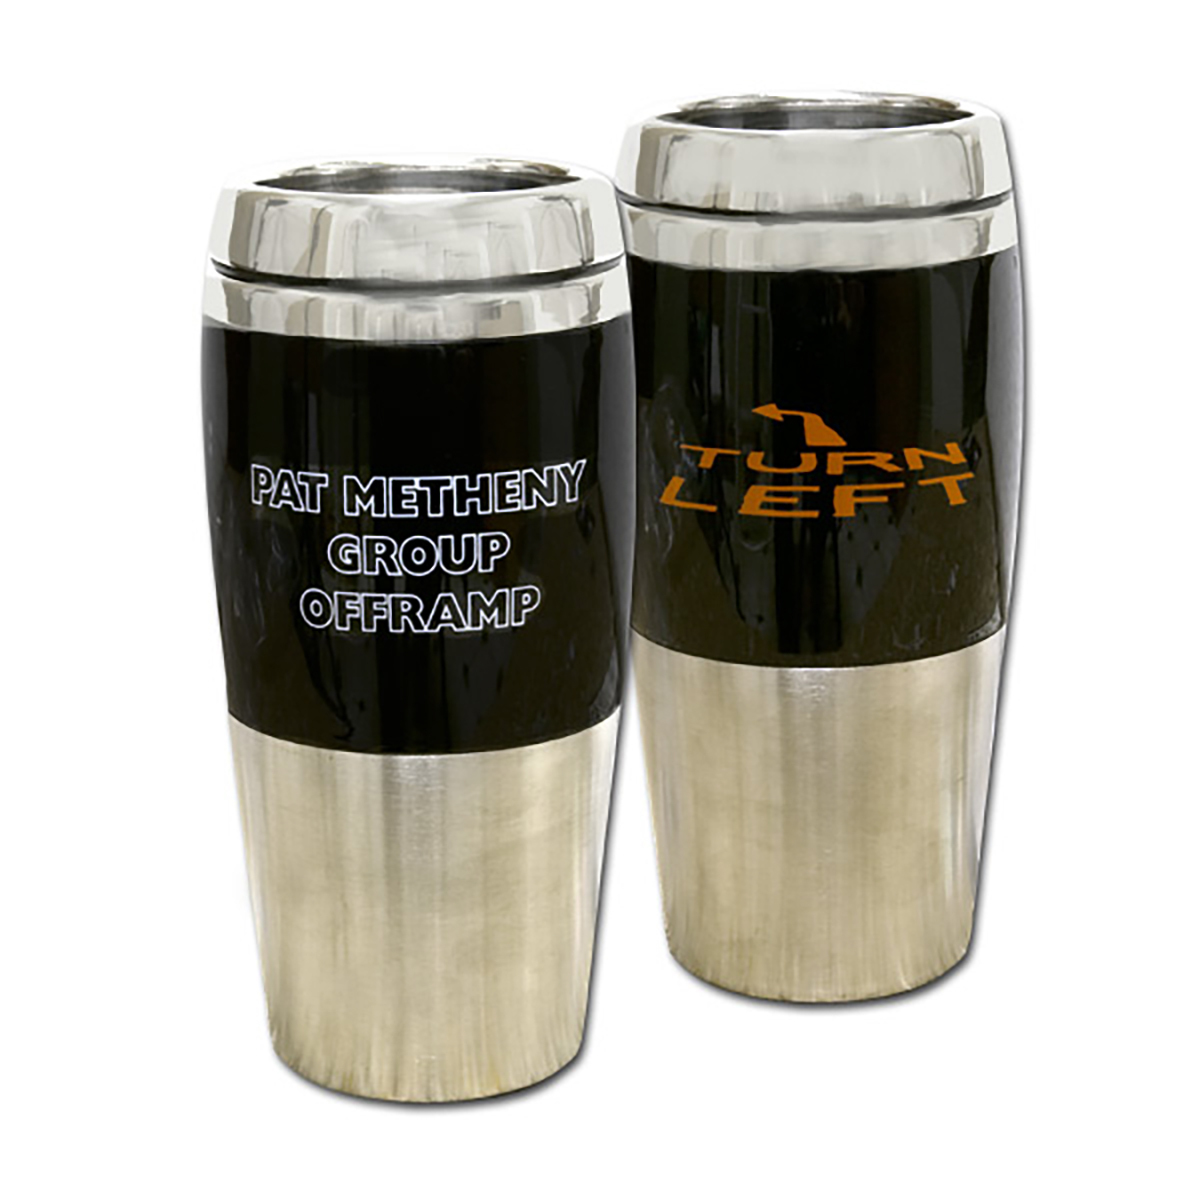 The Pat Metheny Group - Offramp Travel Mug